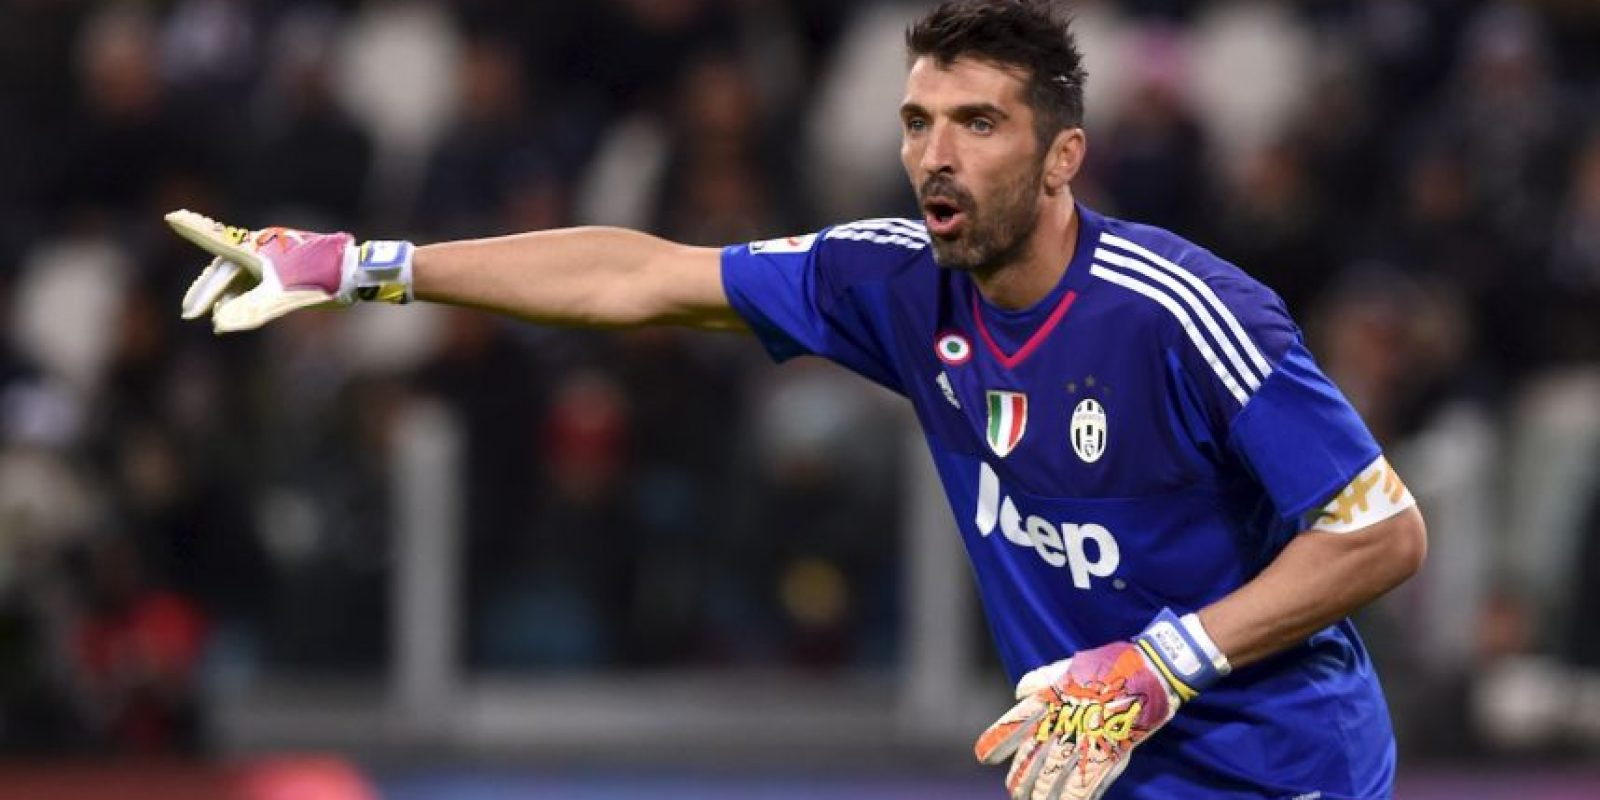 Gianluigi Buffon (Juventus) Foto: Getty images